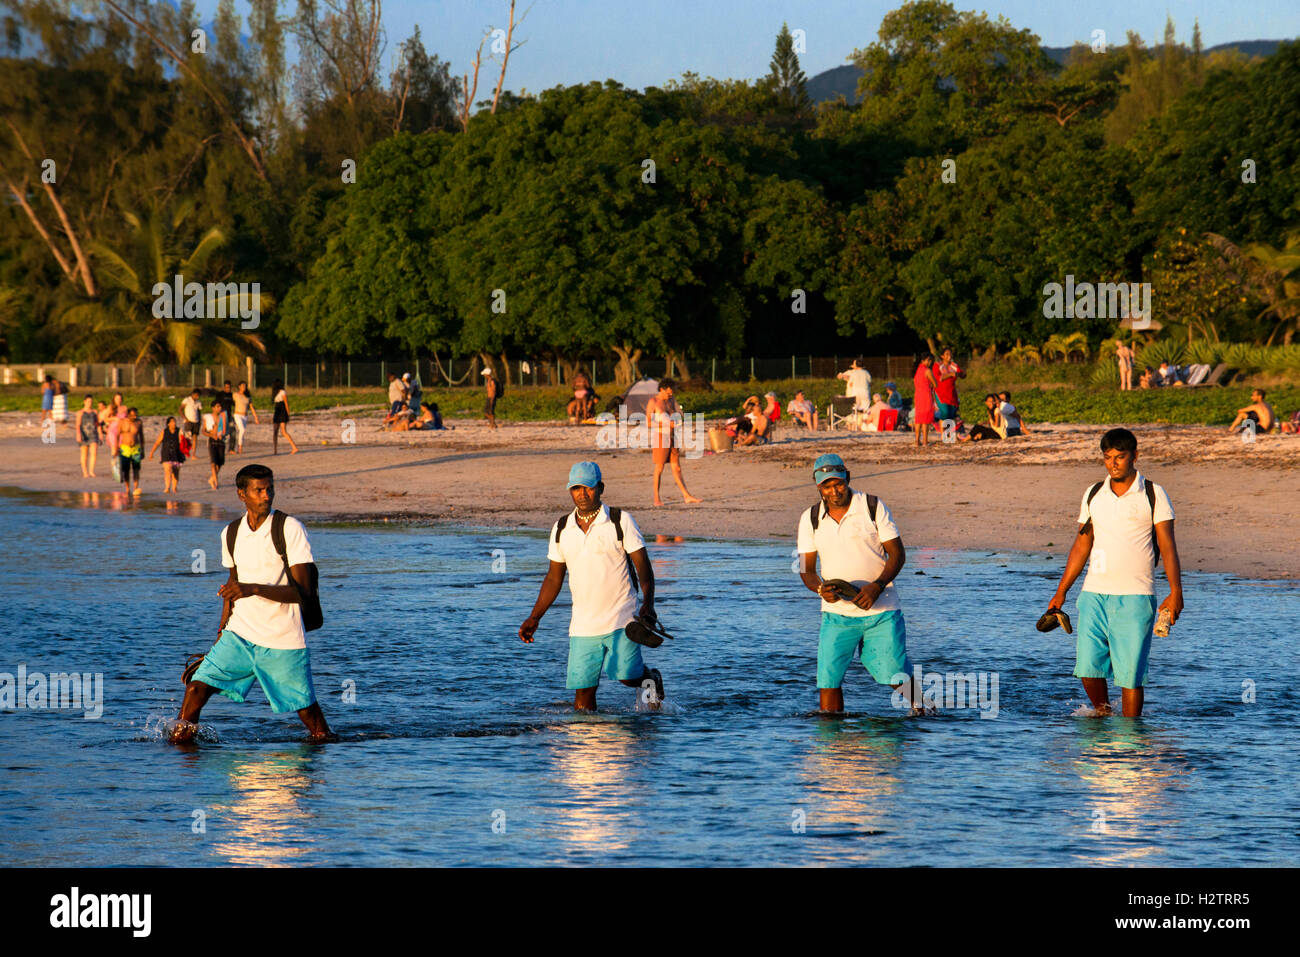 Hotel workers walking in Tamarin beach, Mauritius. Relection in the water. Stock Photo